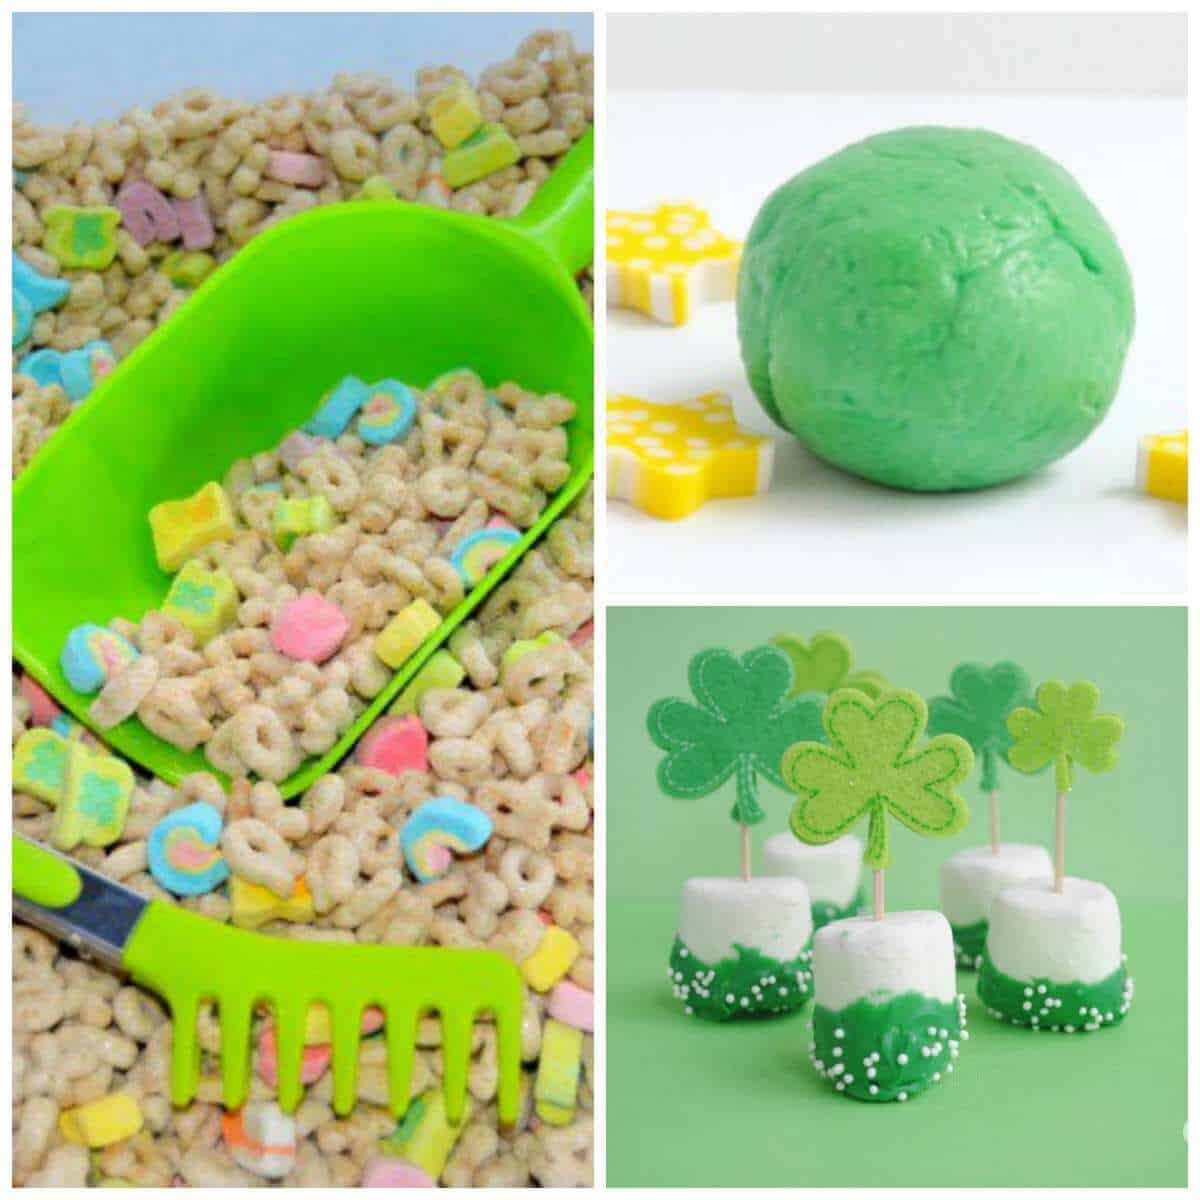 saint patricks day activities for kids